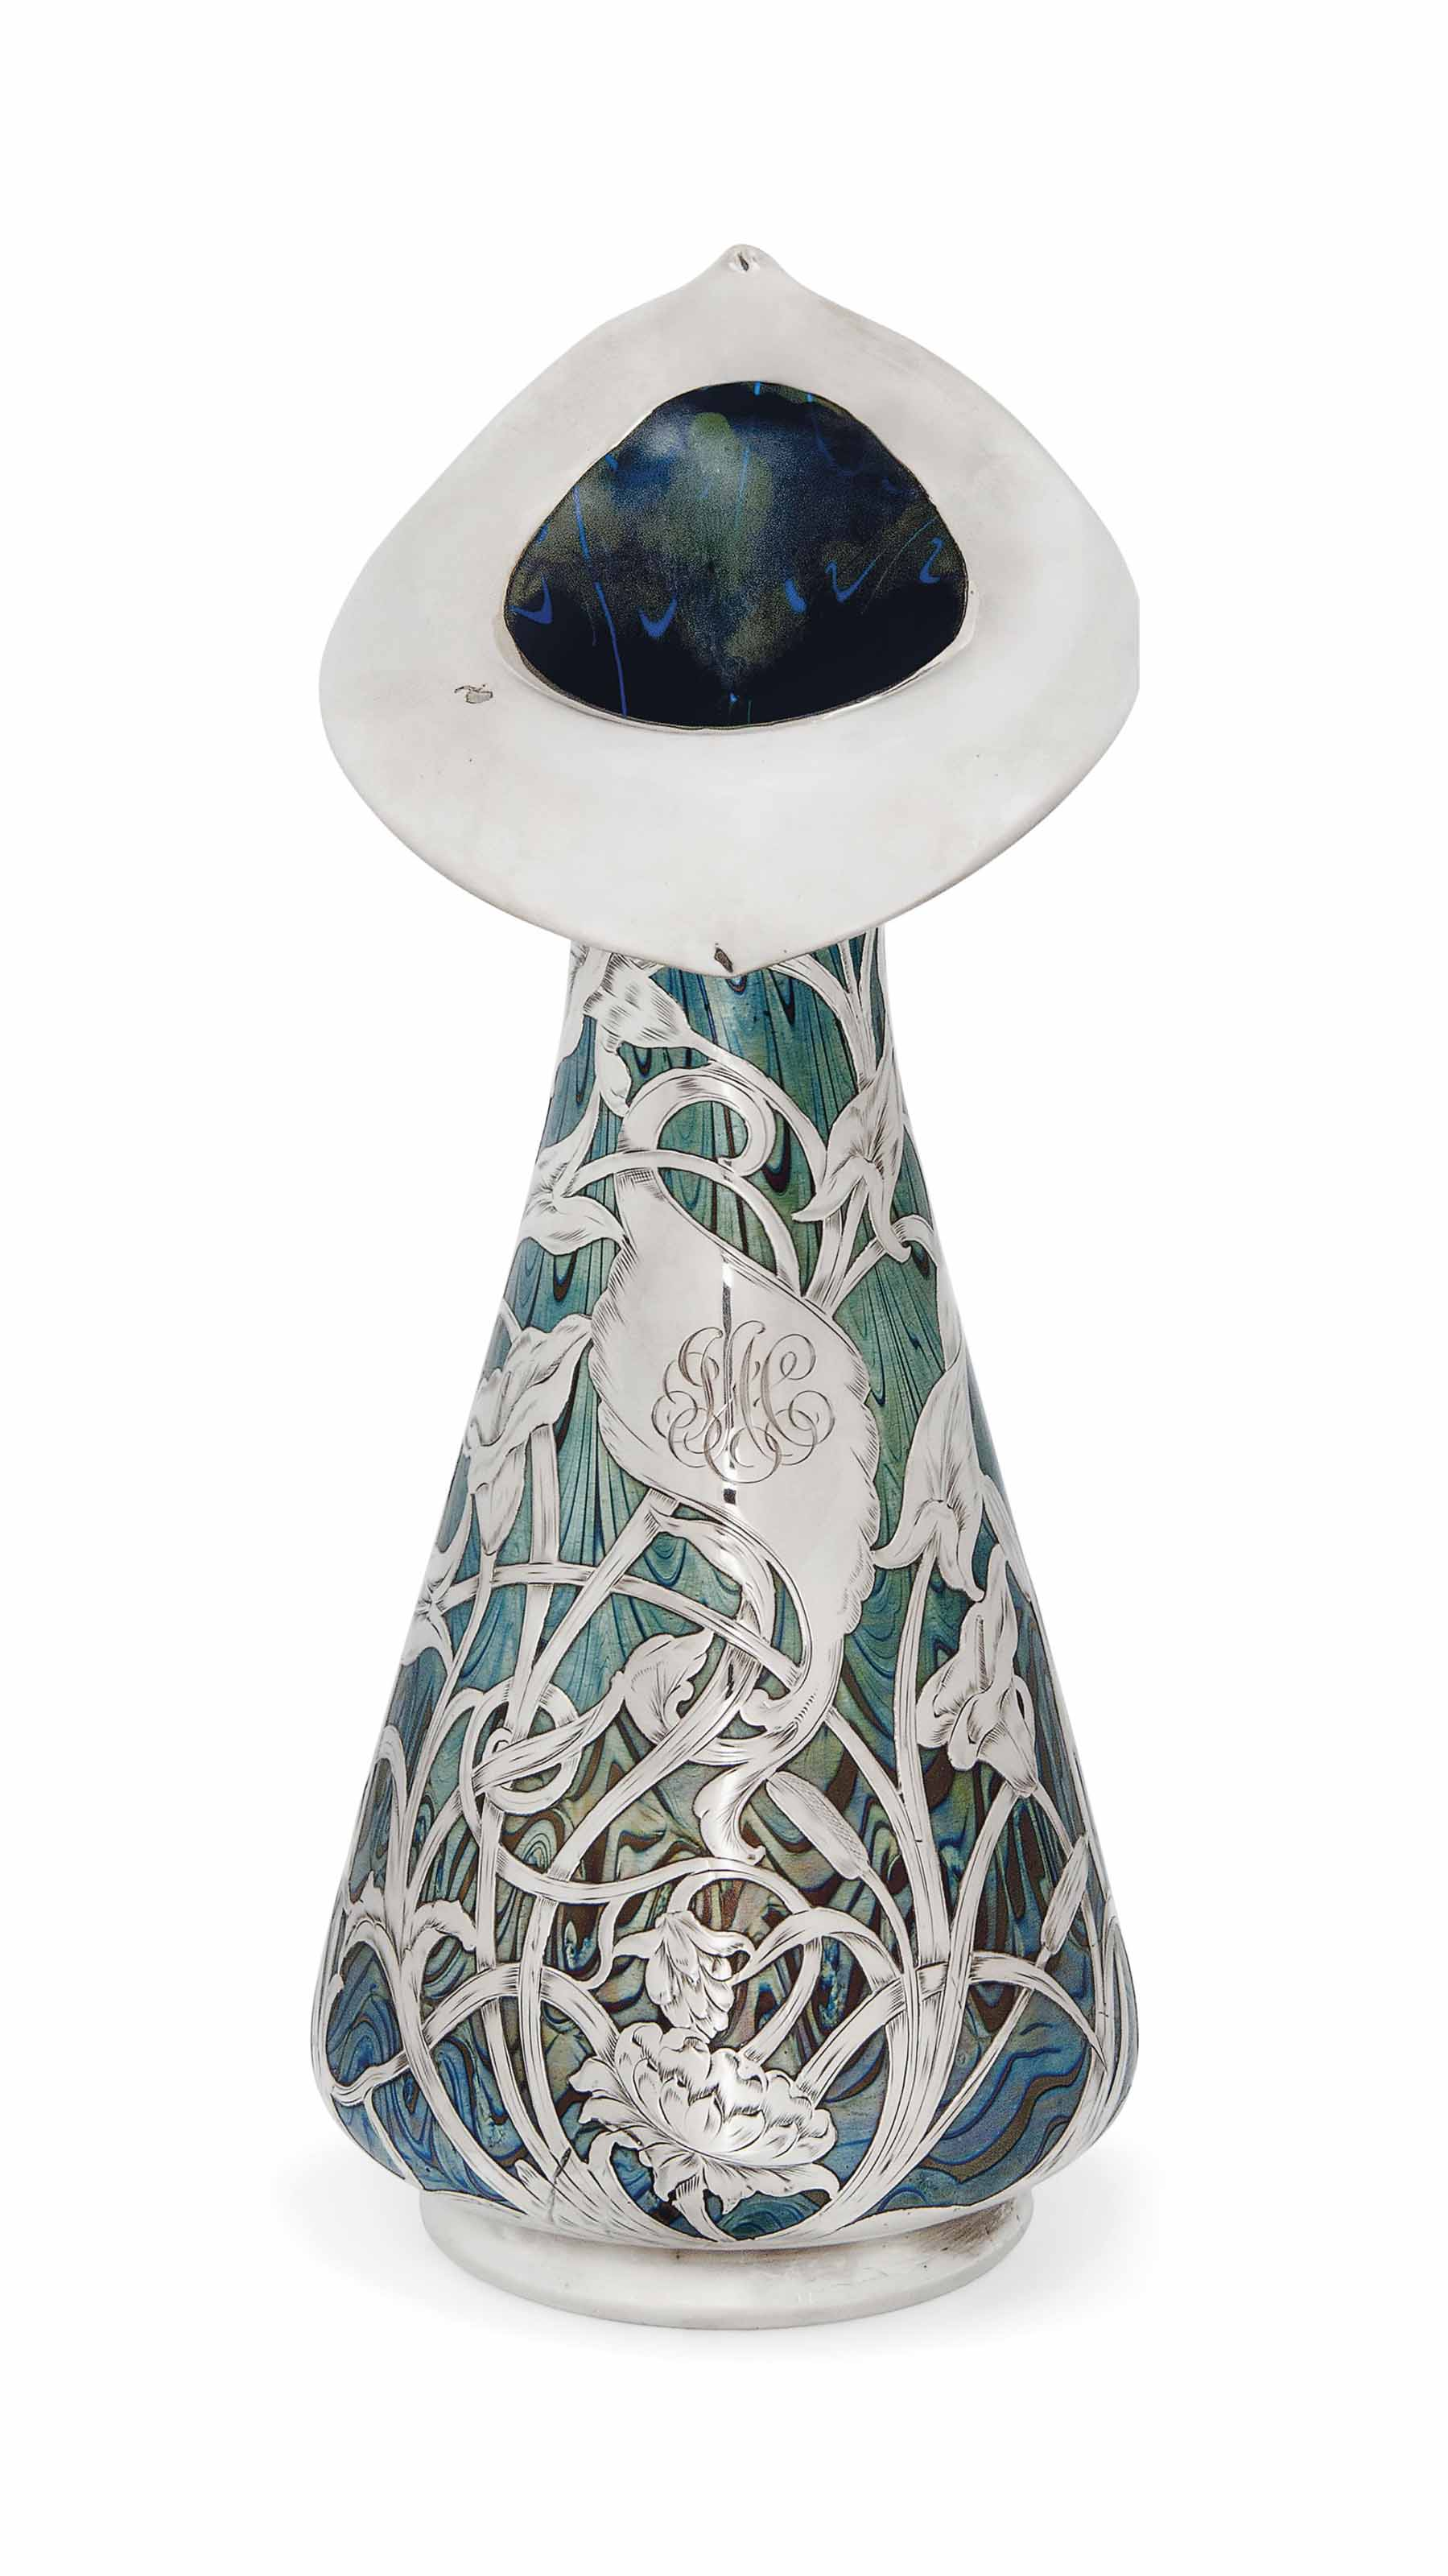 AN UNUSUALLY LARGE LOETZ IRIDESCENT GLASS VASE WITH SILVER APPLIQUÉ